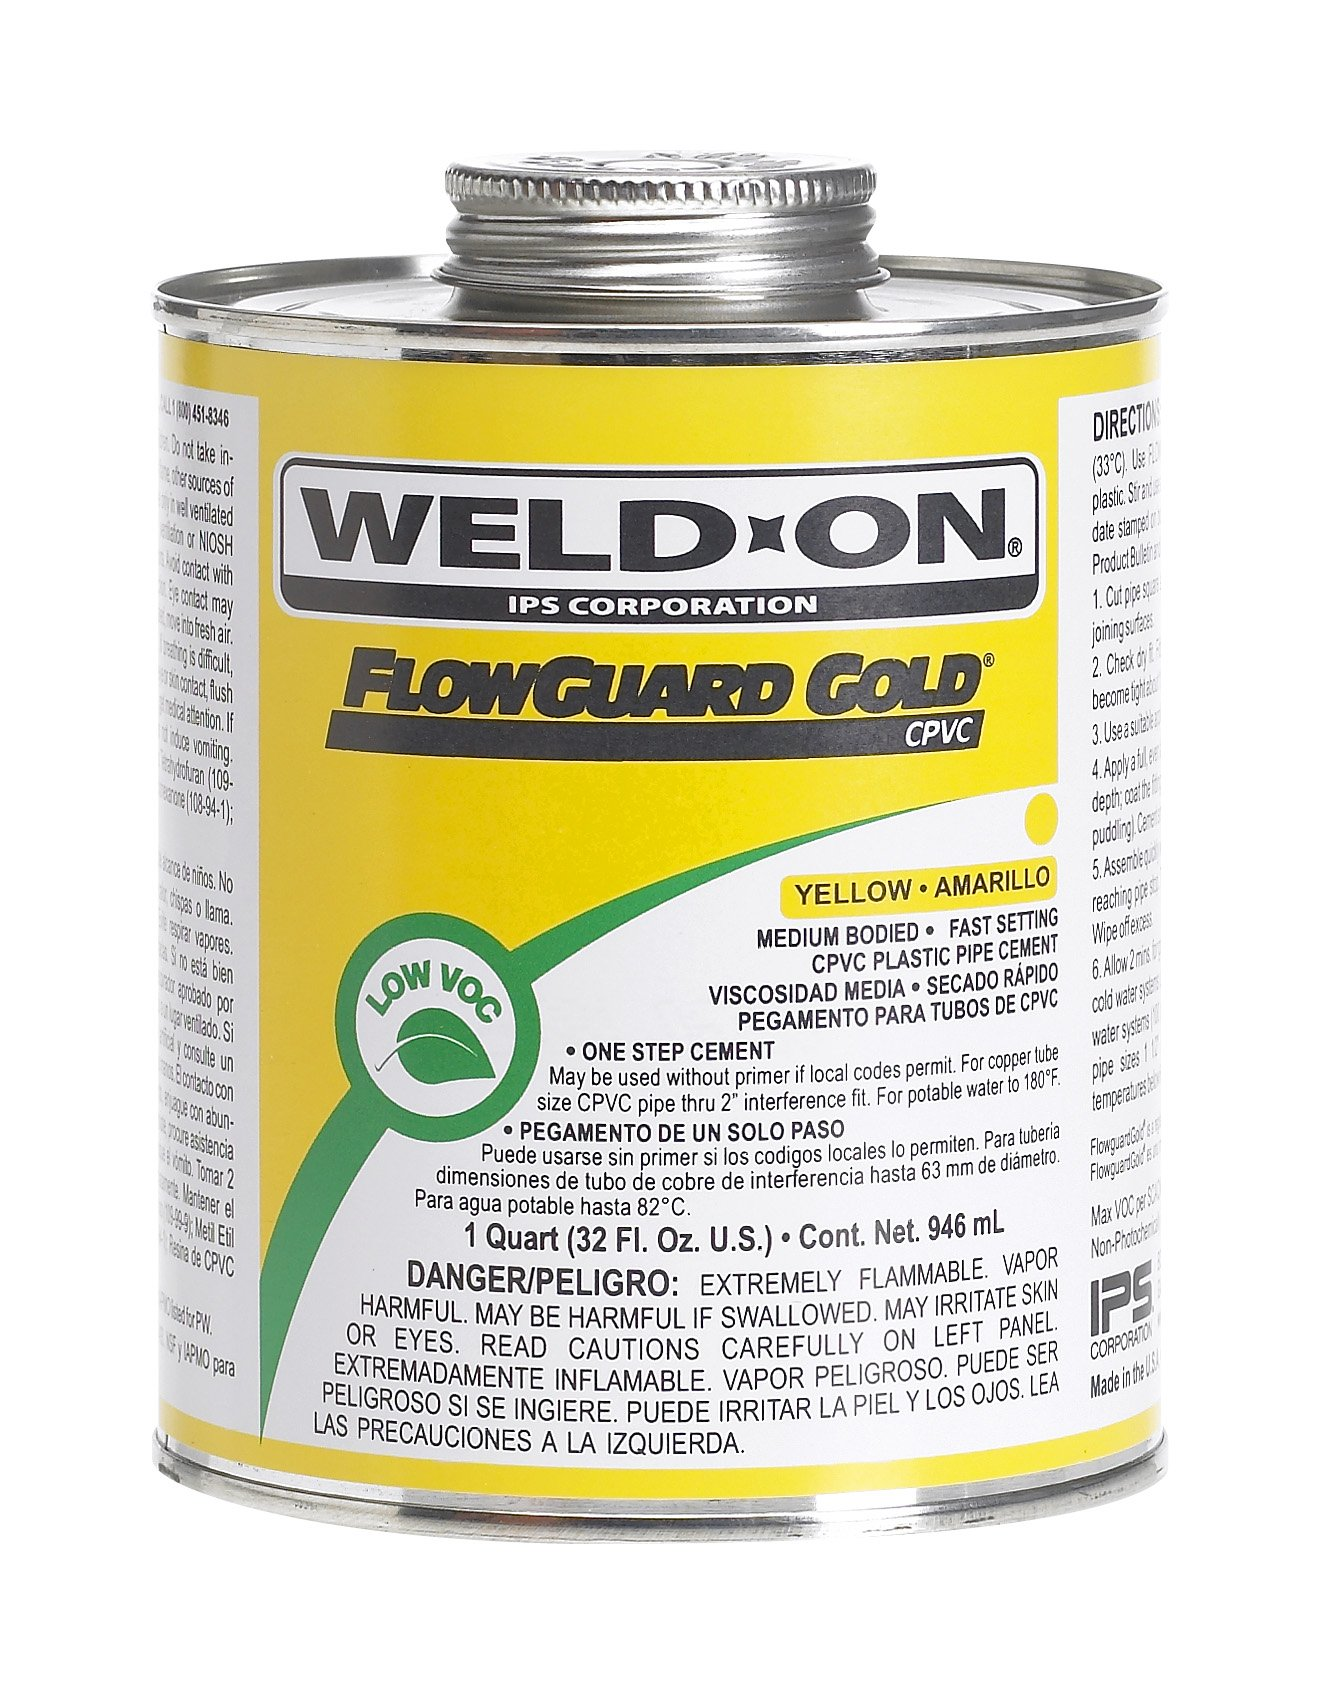 Weld-On 11026 Yellow Medium-Bodied CPVC FlowGuard Gold Professional Plumbing-Grade Cement, Fast-Setting, Low-VOC, 1 quart Can with Applicator Cap